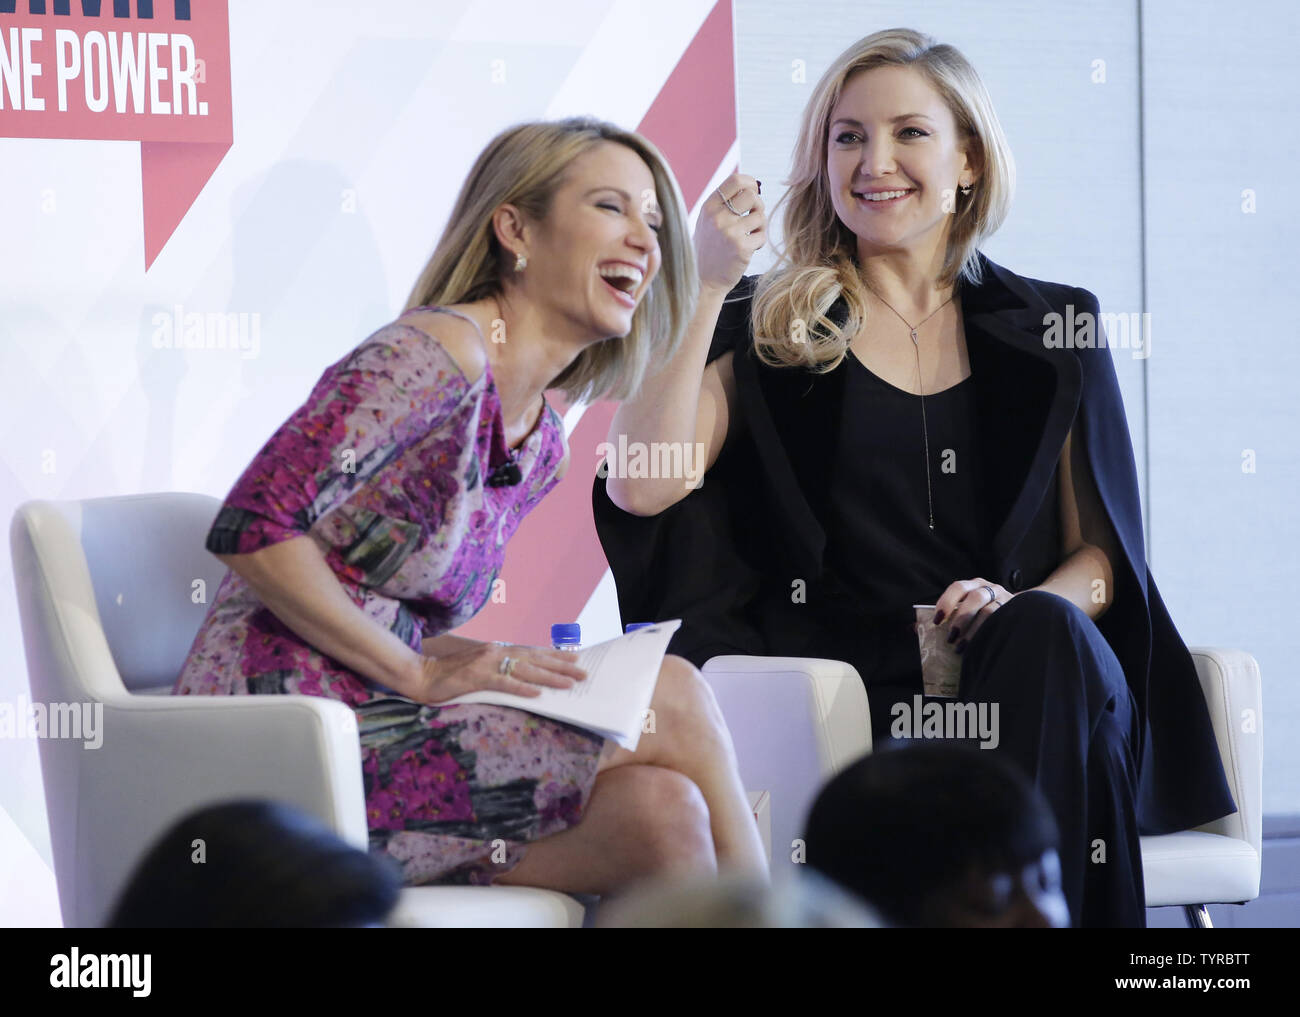 Amy Robach interviews Kate Hudson at the 4th annual Forbes Women's Summit at Pier 60 Chelsea Piers in New York City on May 12, 2016.     Photo by John Angelillo/UPI Stock Photo